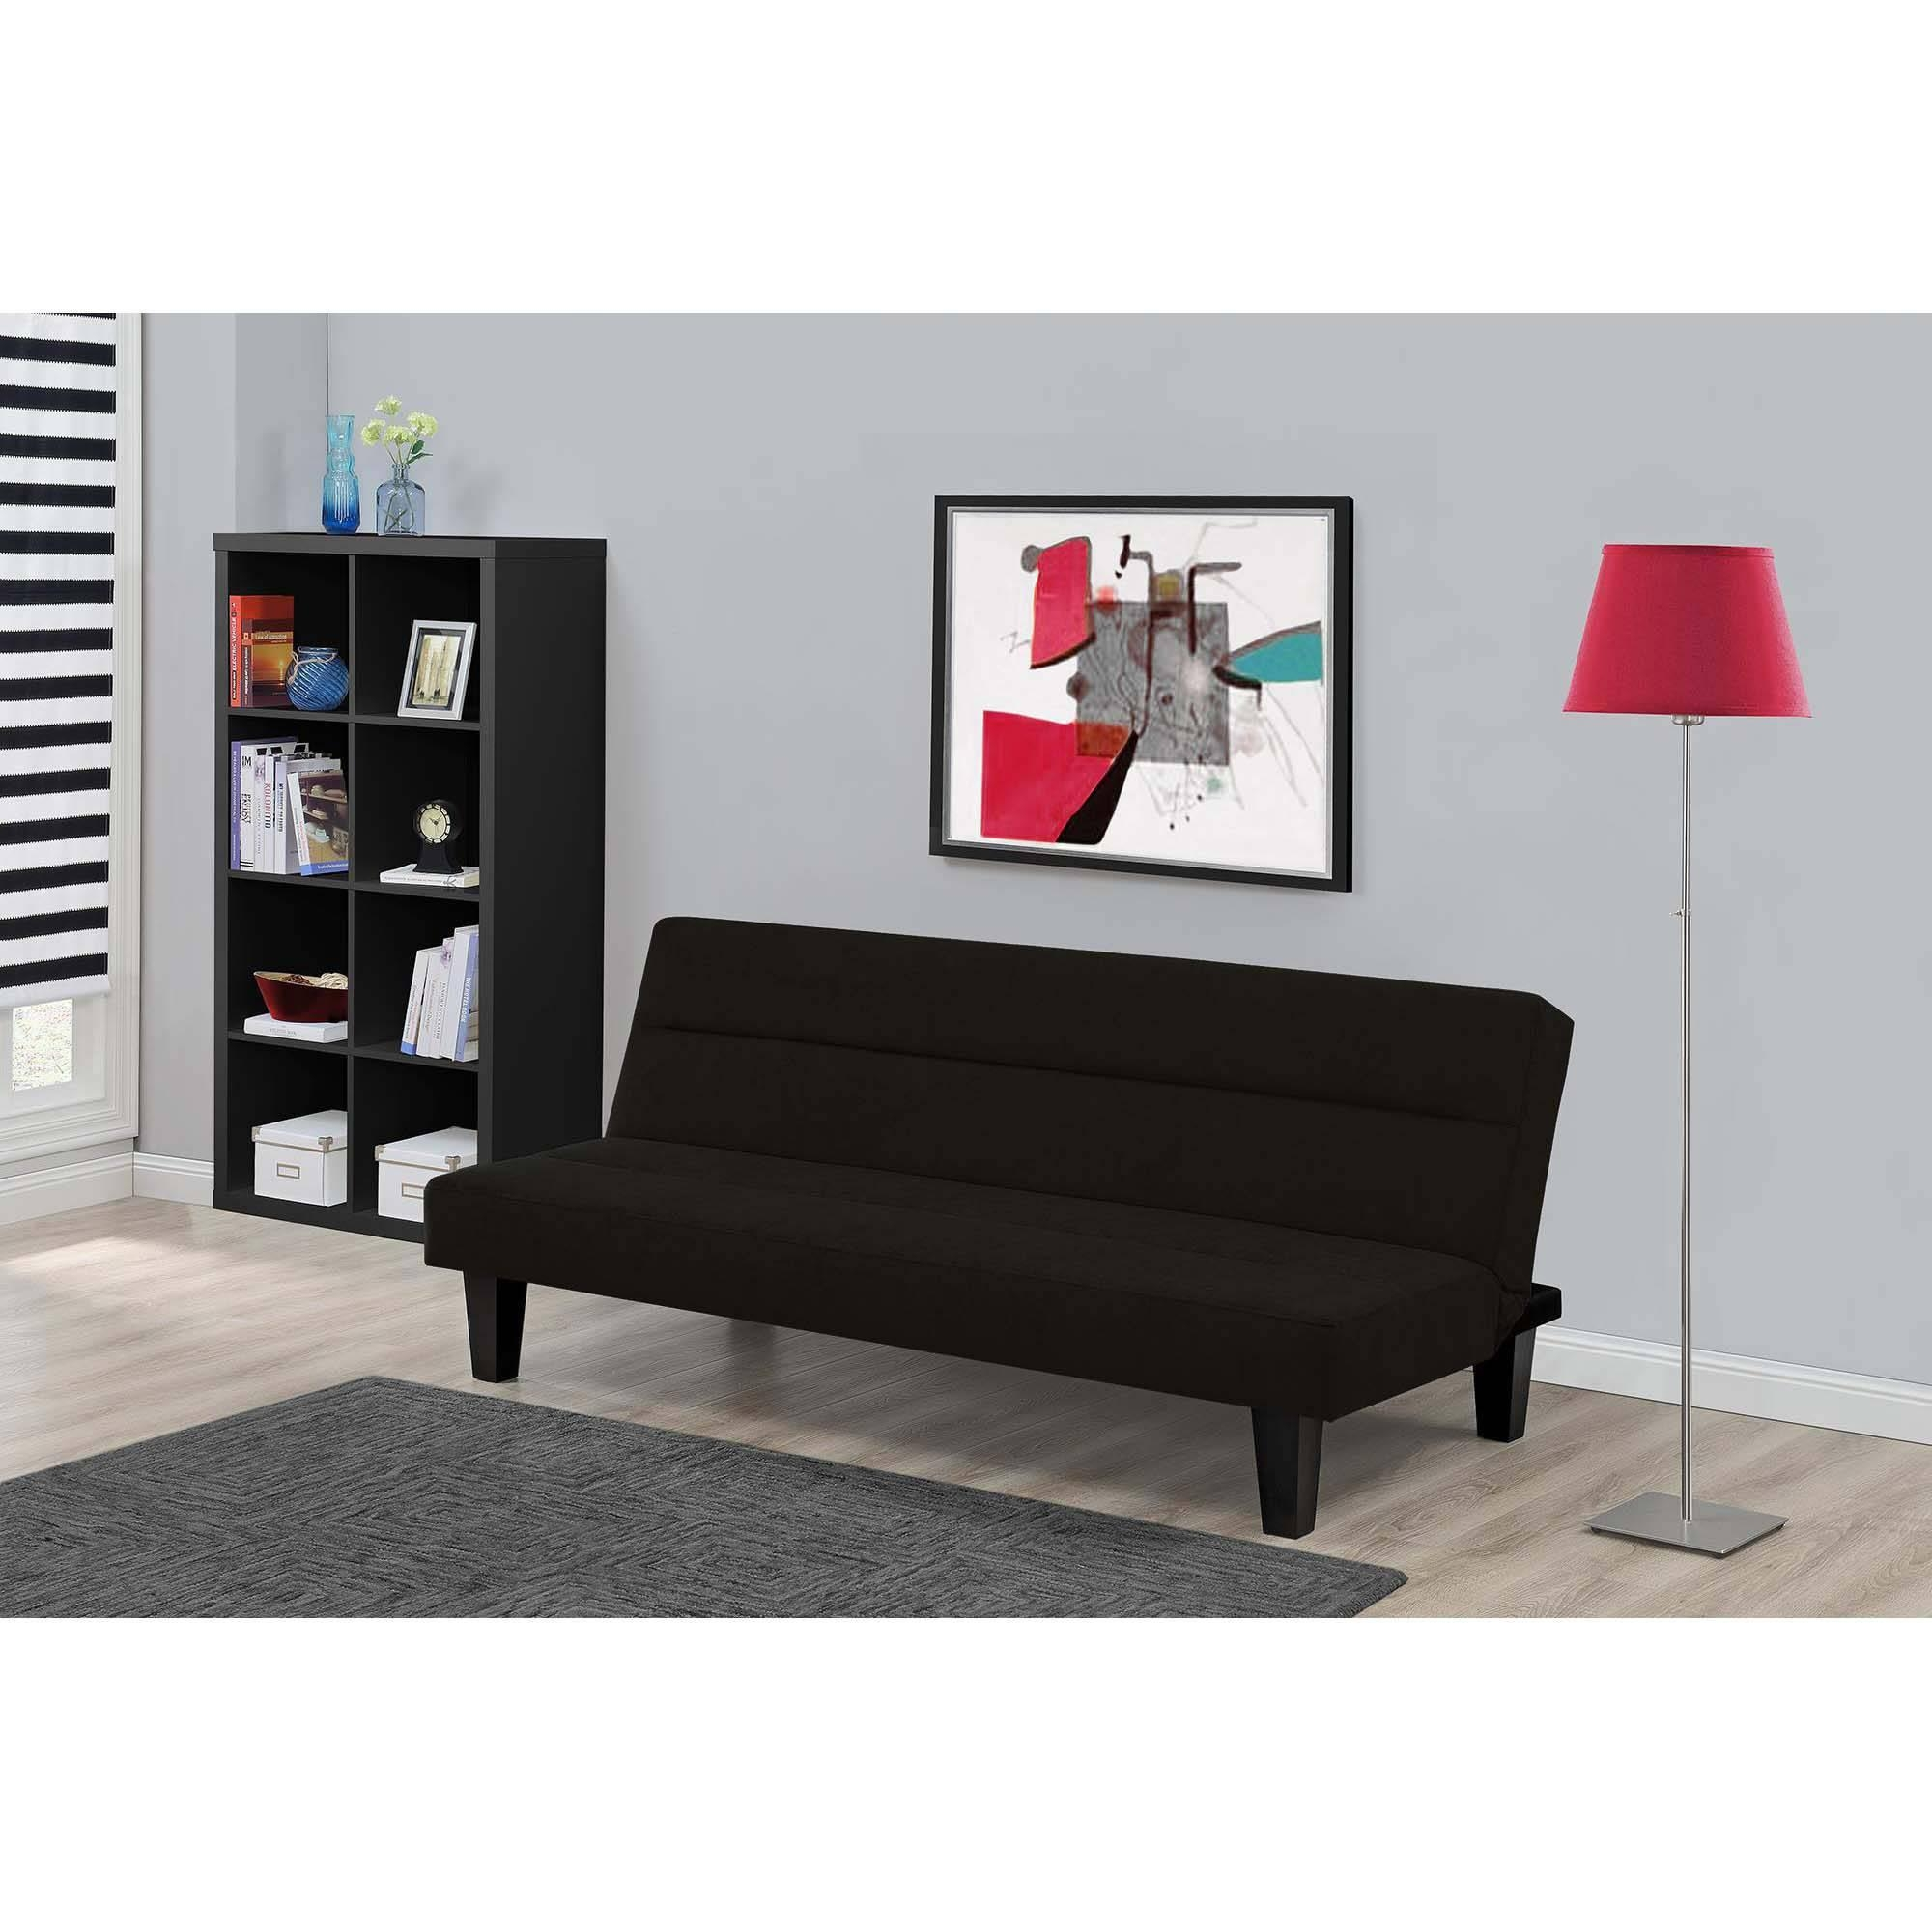 Microfiber Futon Folding Sofa Bed Couch Mattress & Storage For Wallmart Sofa (Image 17 of 20)